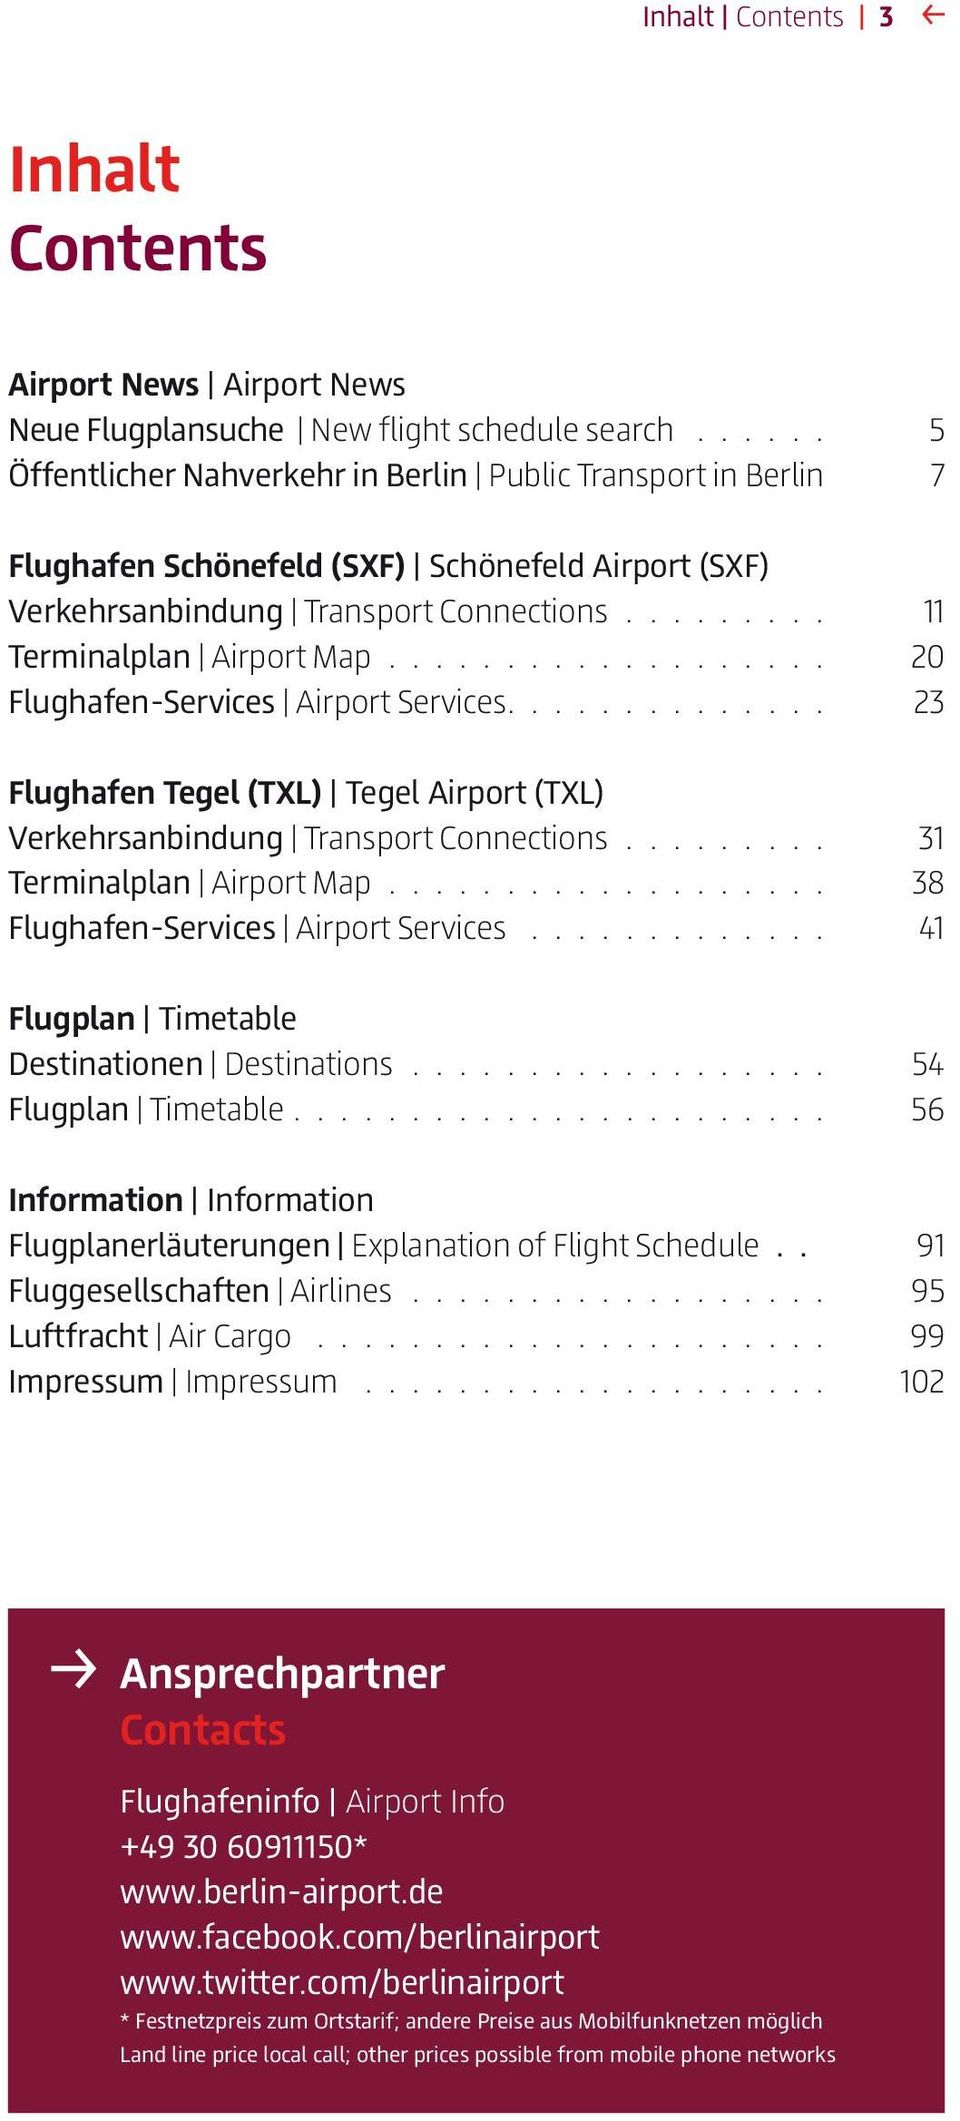 20 Flughafen-Services Airport Services. 23. Flughafen Tegel (TXL) Tegel Airport (TXL) Verkehrsanbindung Transport Connections. 31 Terminalplan Airport Map.